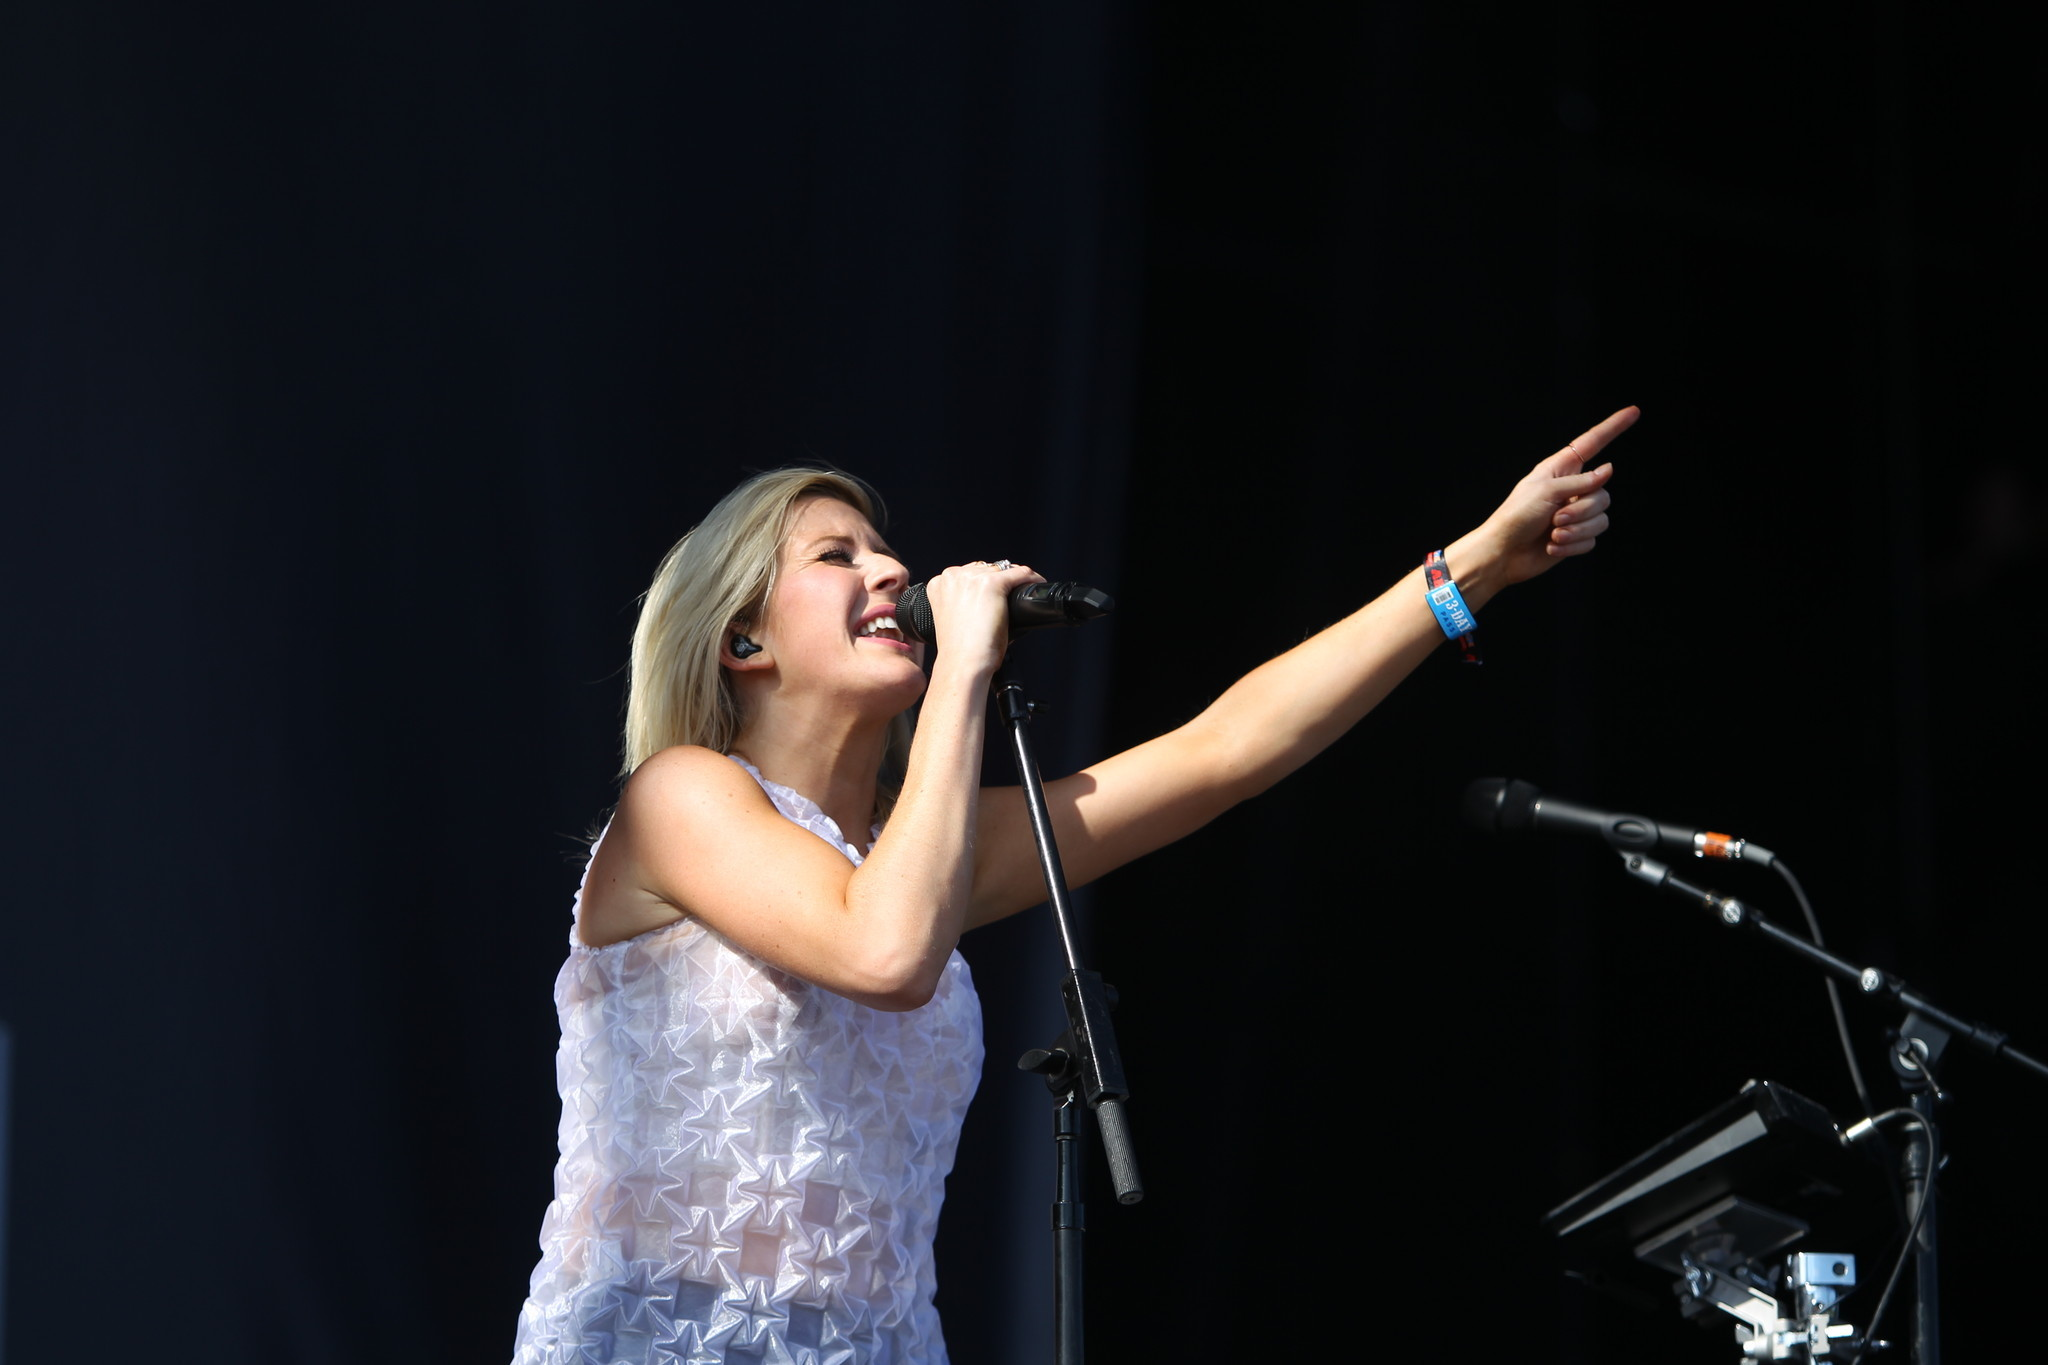 Photos: 2013 Lollapalooza Day Two - Ellie Goulding